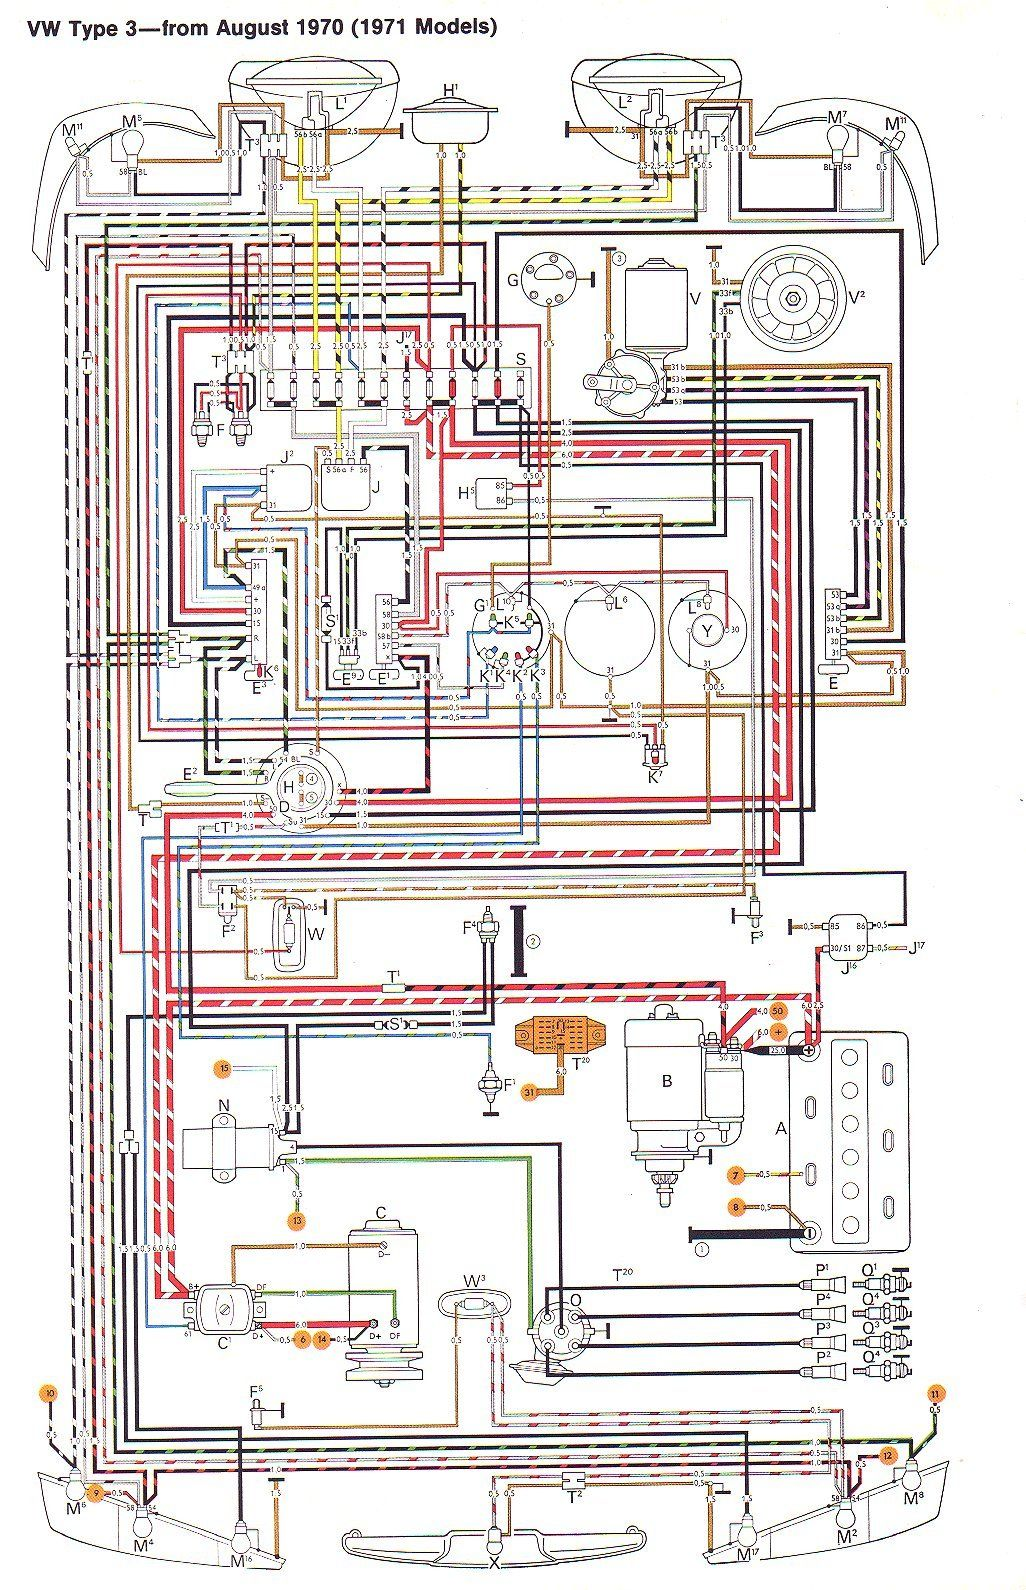 e0db58370f79a63d02d45f00cf63f44a 71 vw t3 wiring diagram ruthie pinterest volkswagen, engine vw golf 3 electrical wiring diagram at webbmarketing.co